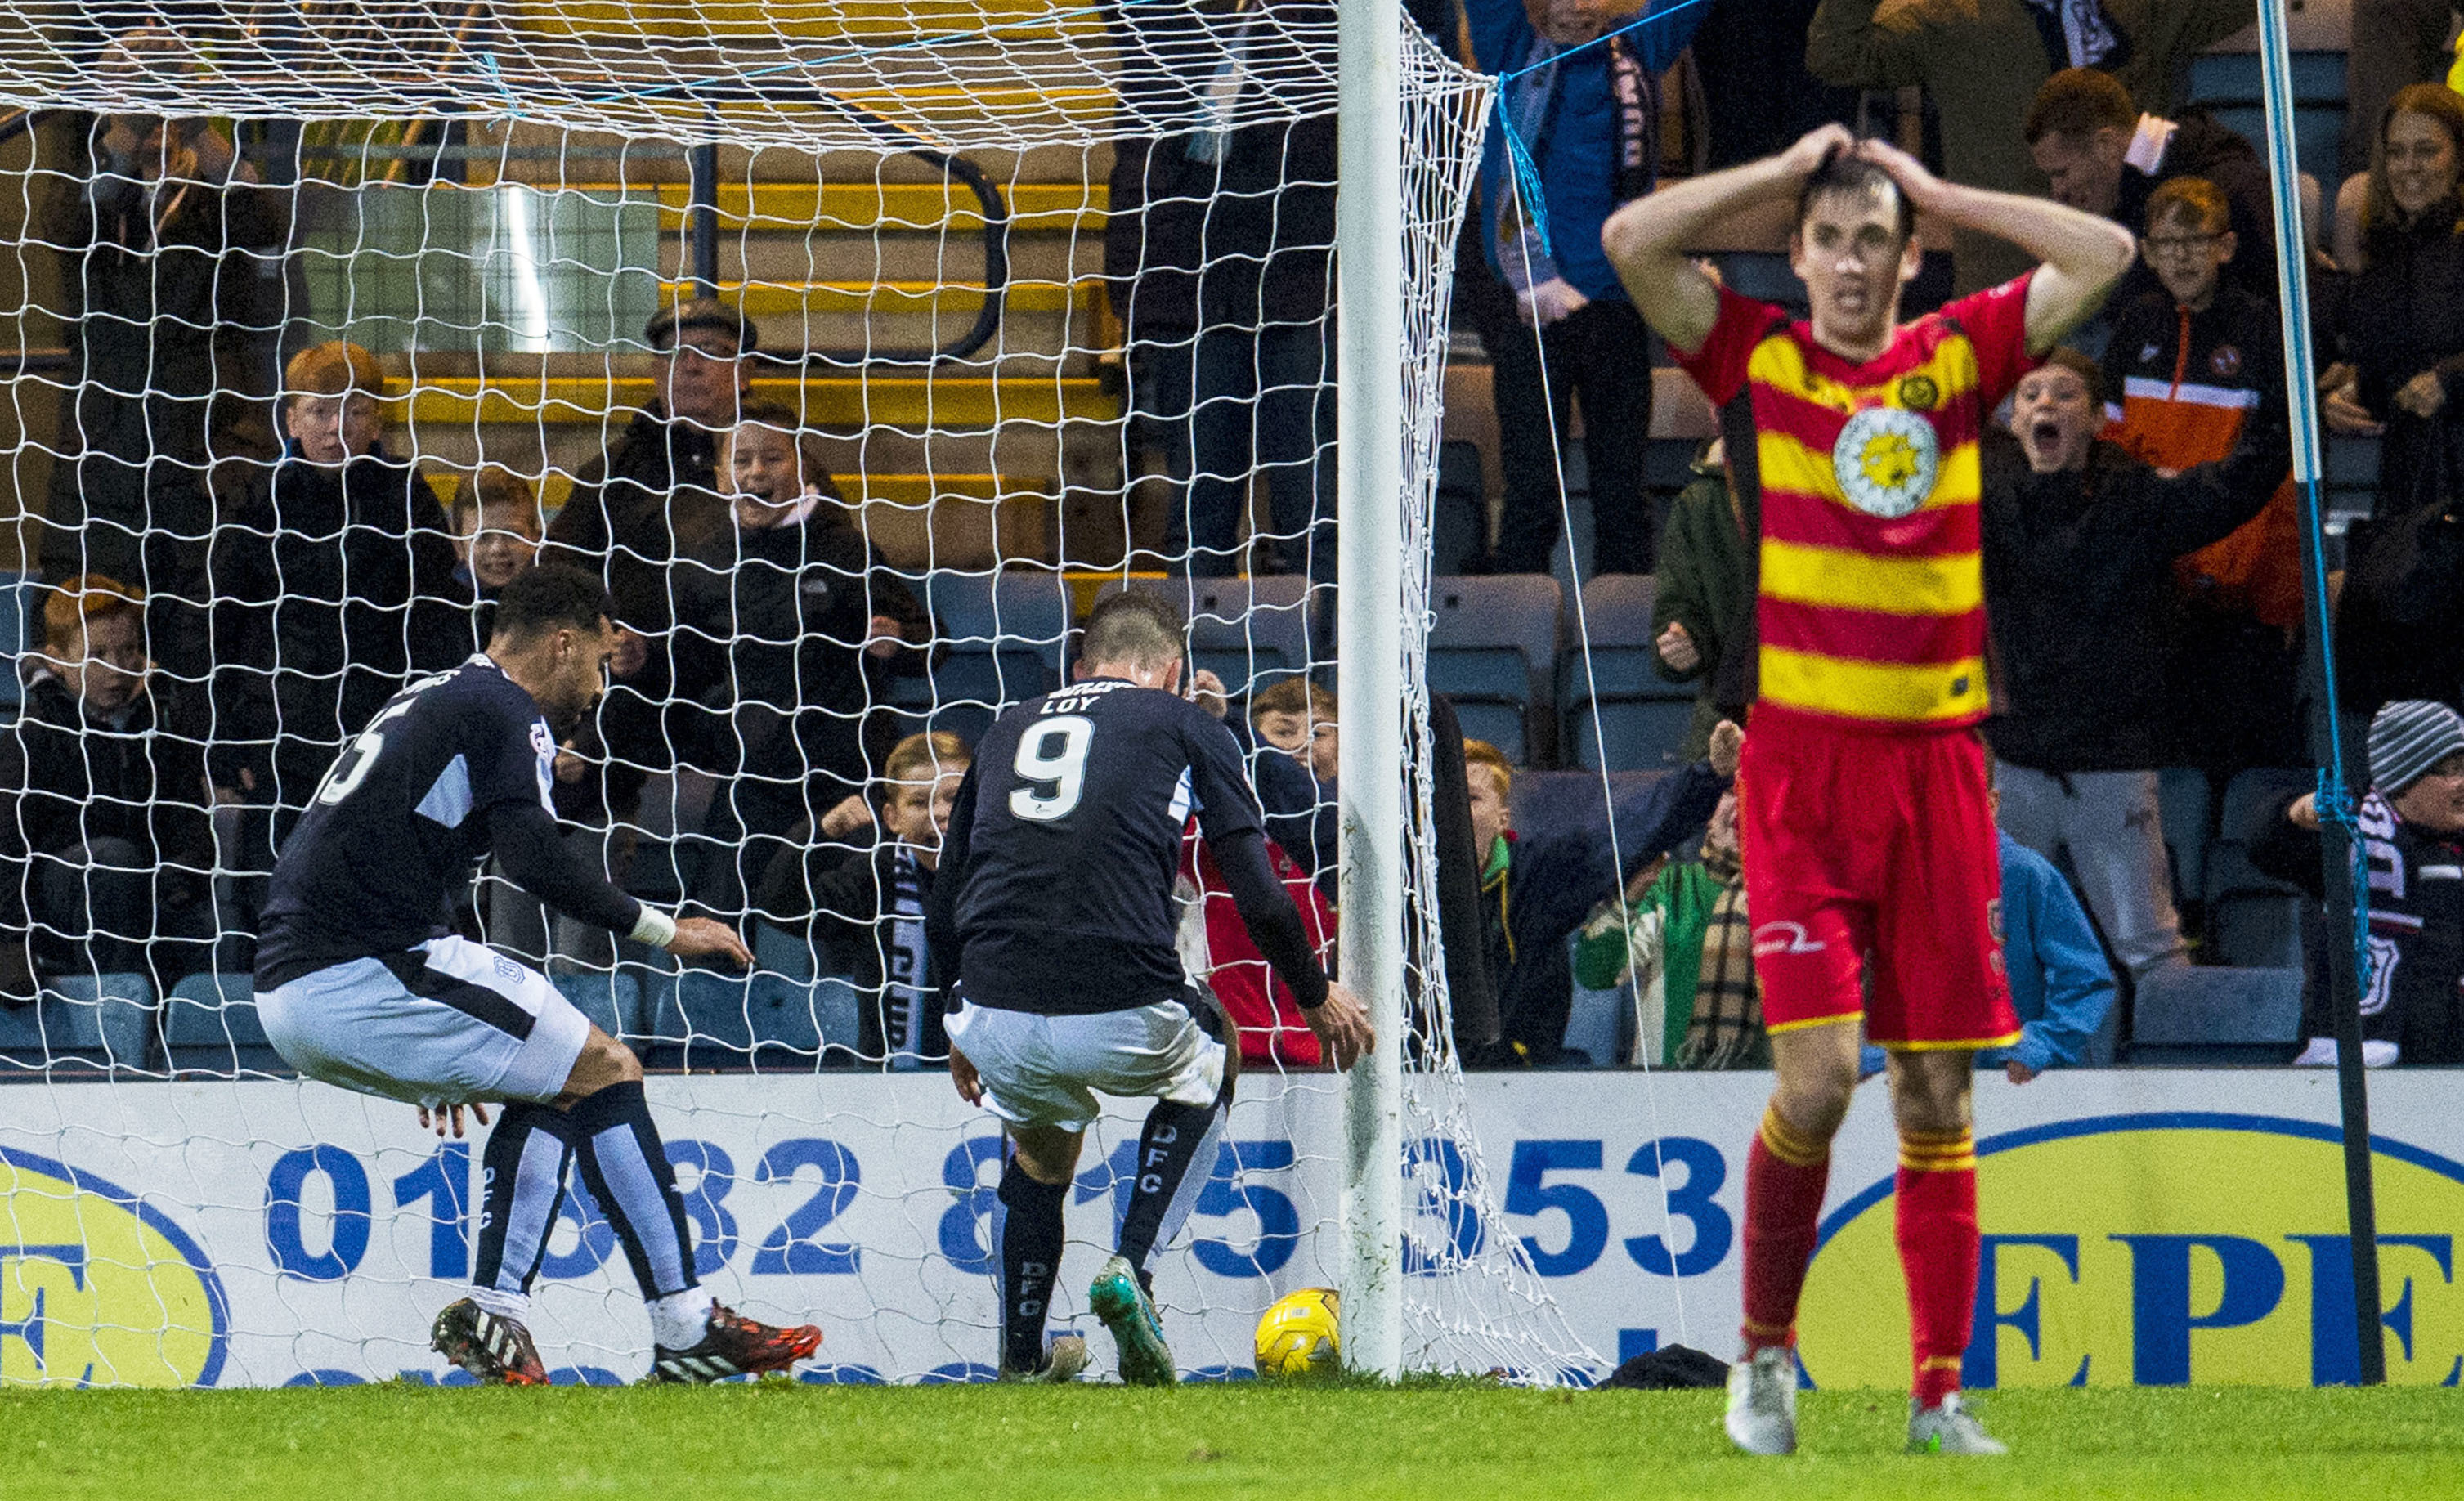 Dundee left it late to salvage a point in their last home game